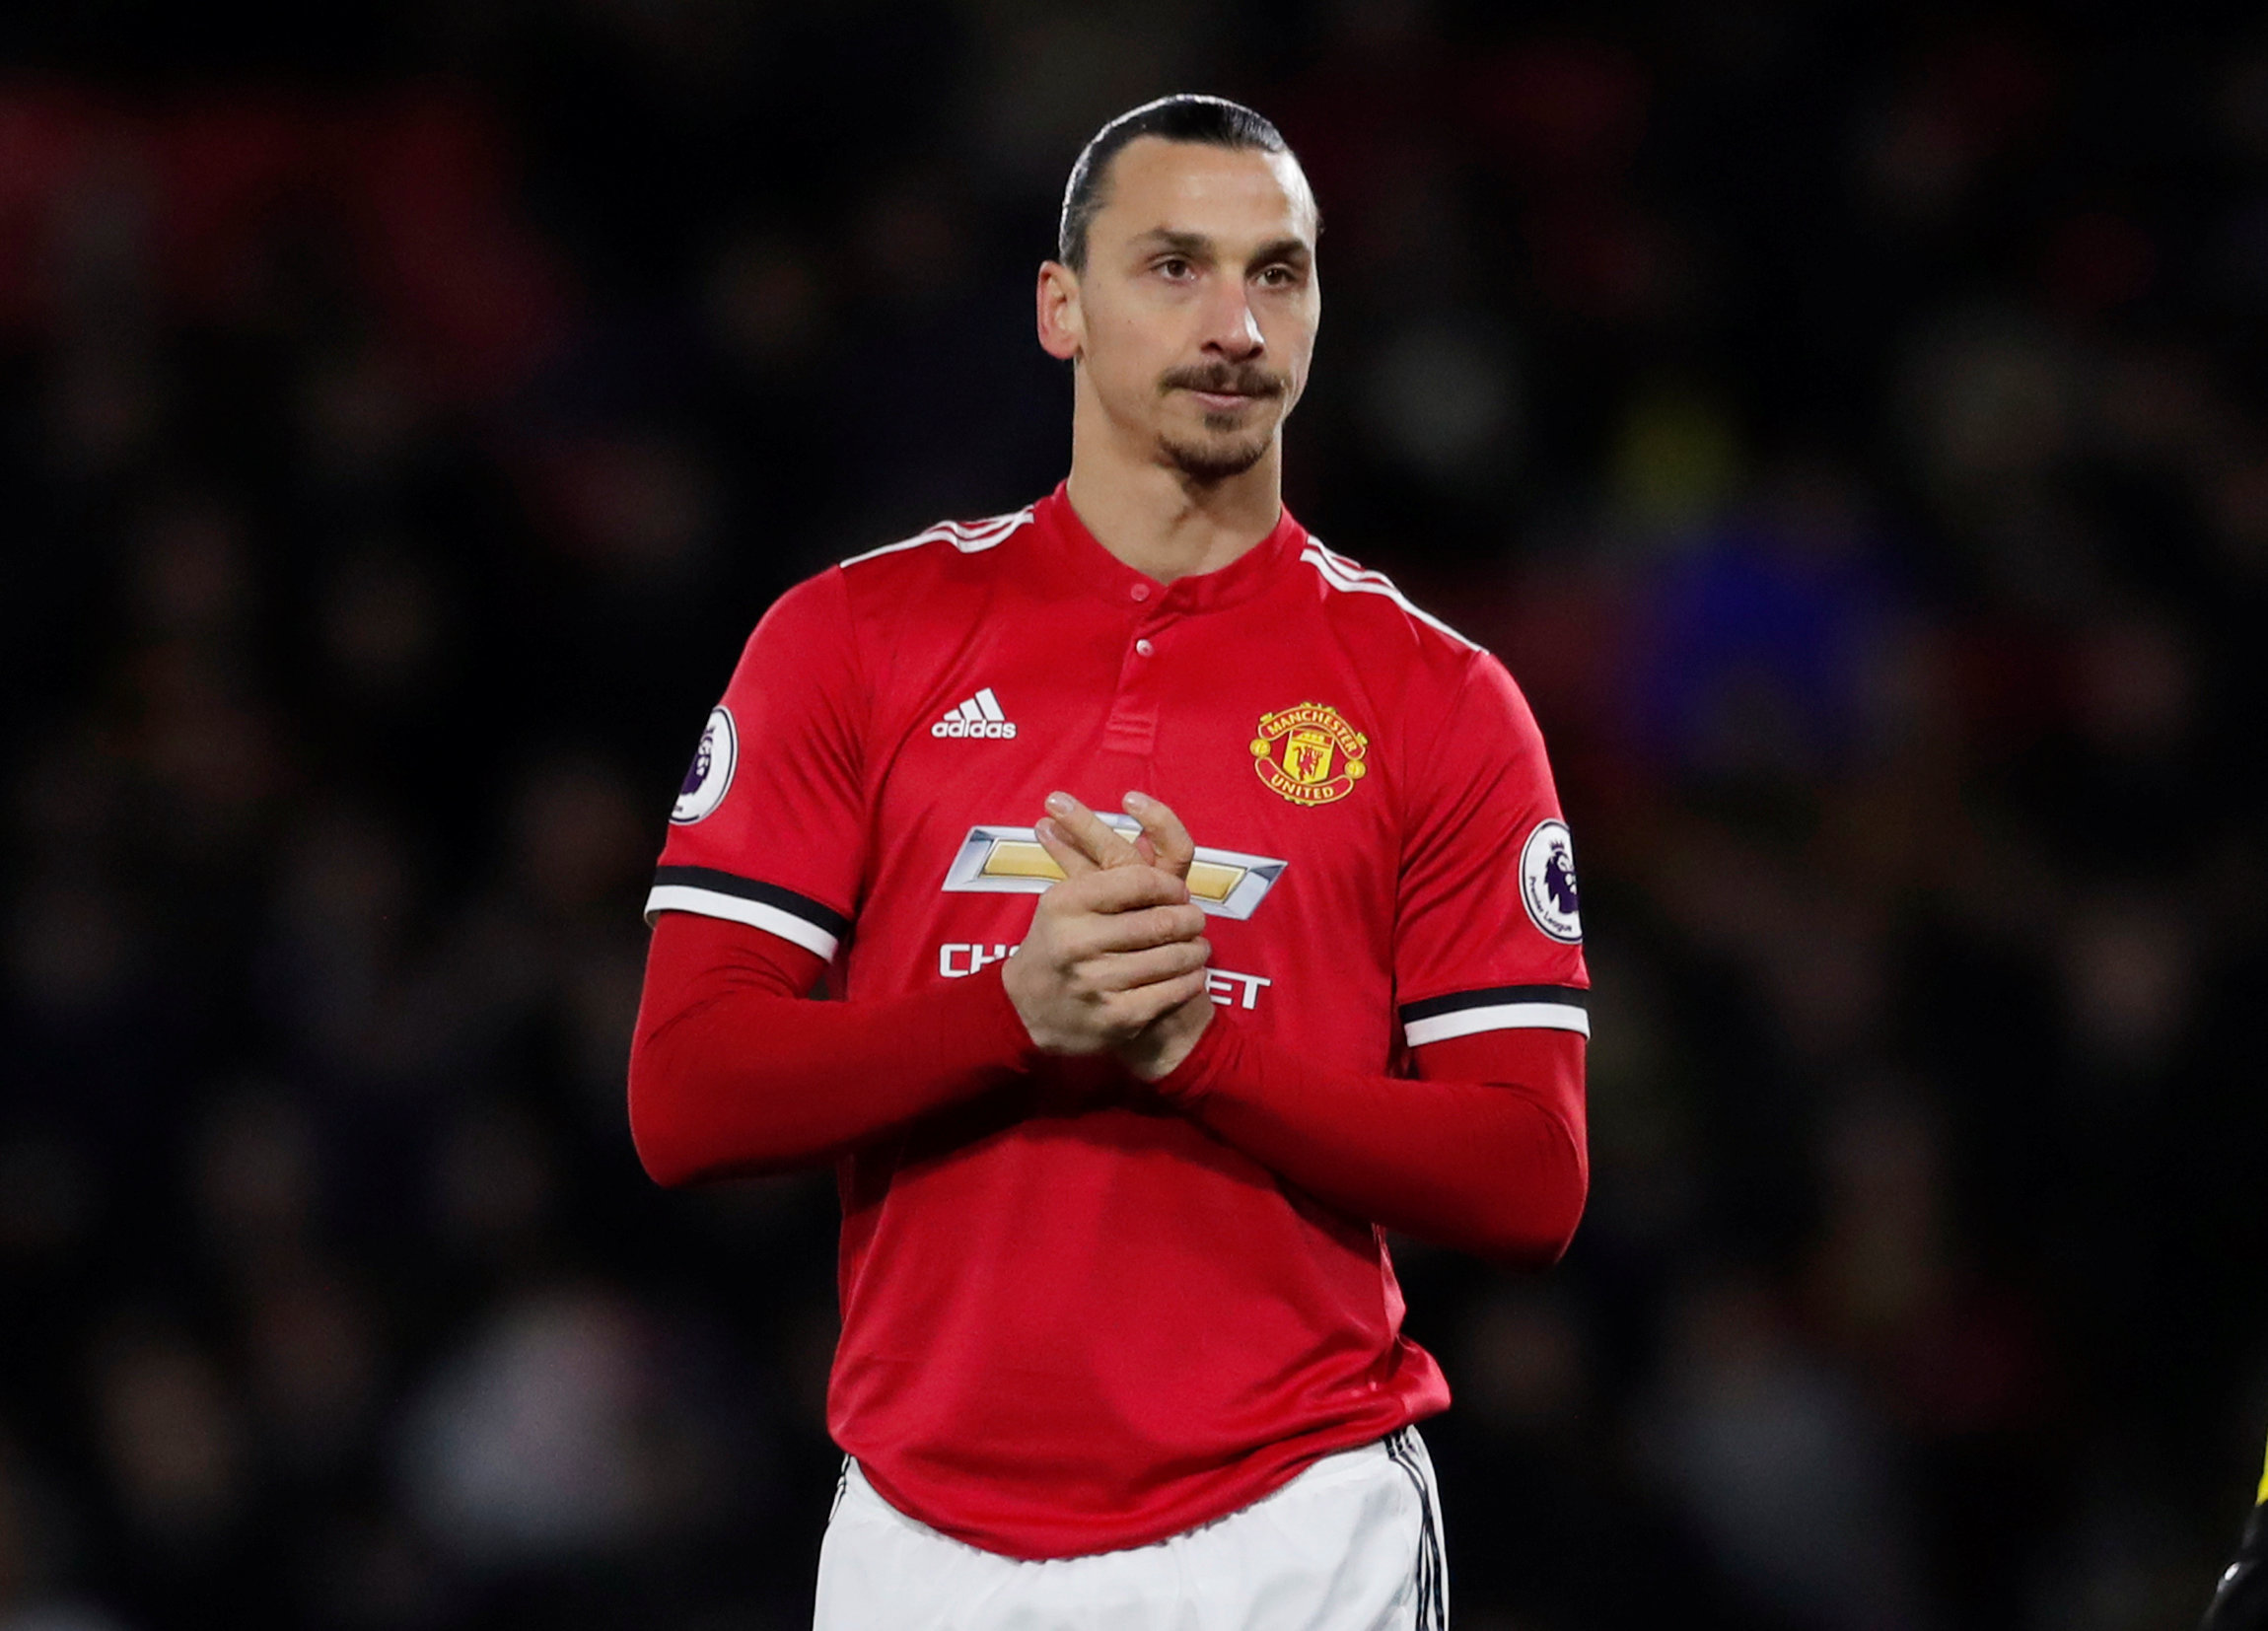 Why Manchester United pulled out of race to re-sign Zlatan Ibrahimovic